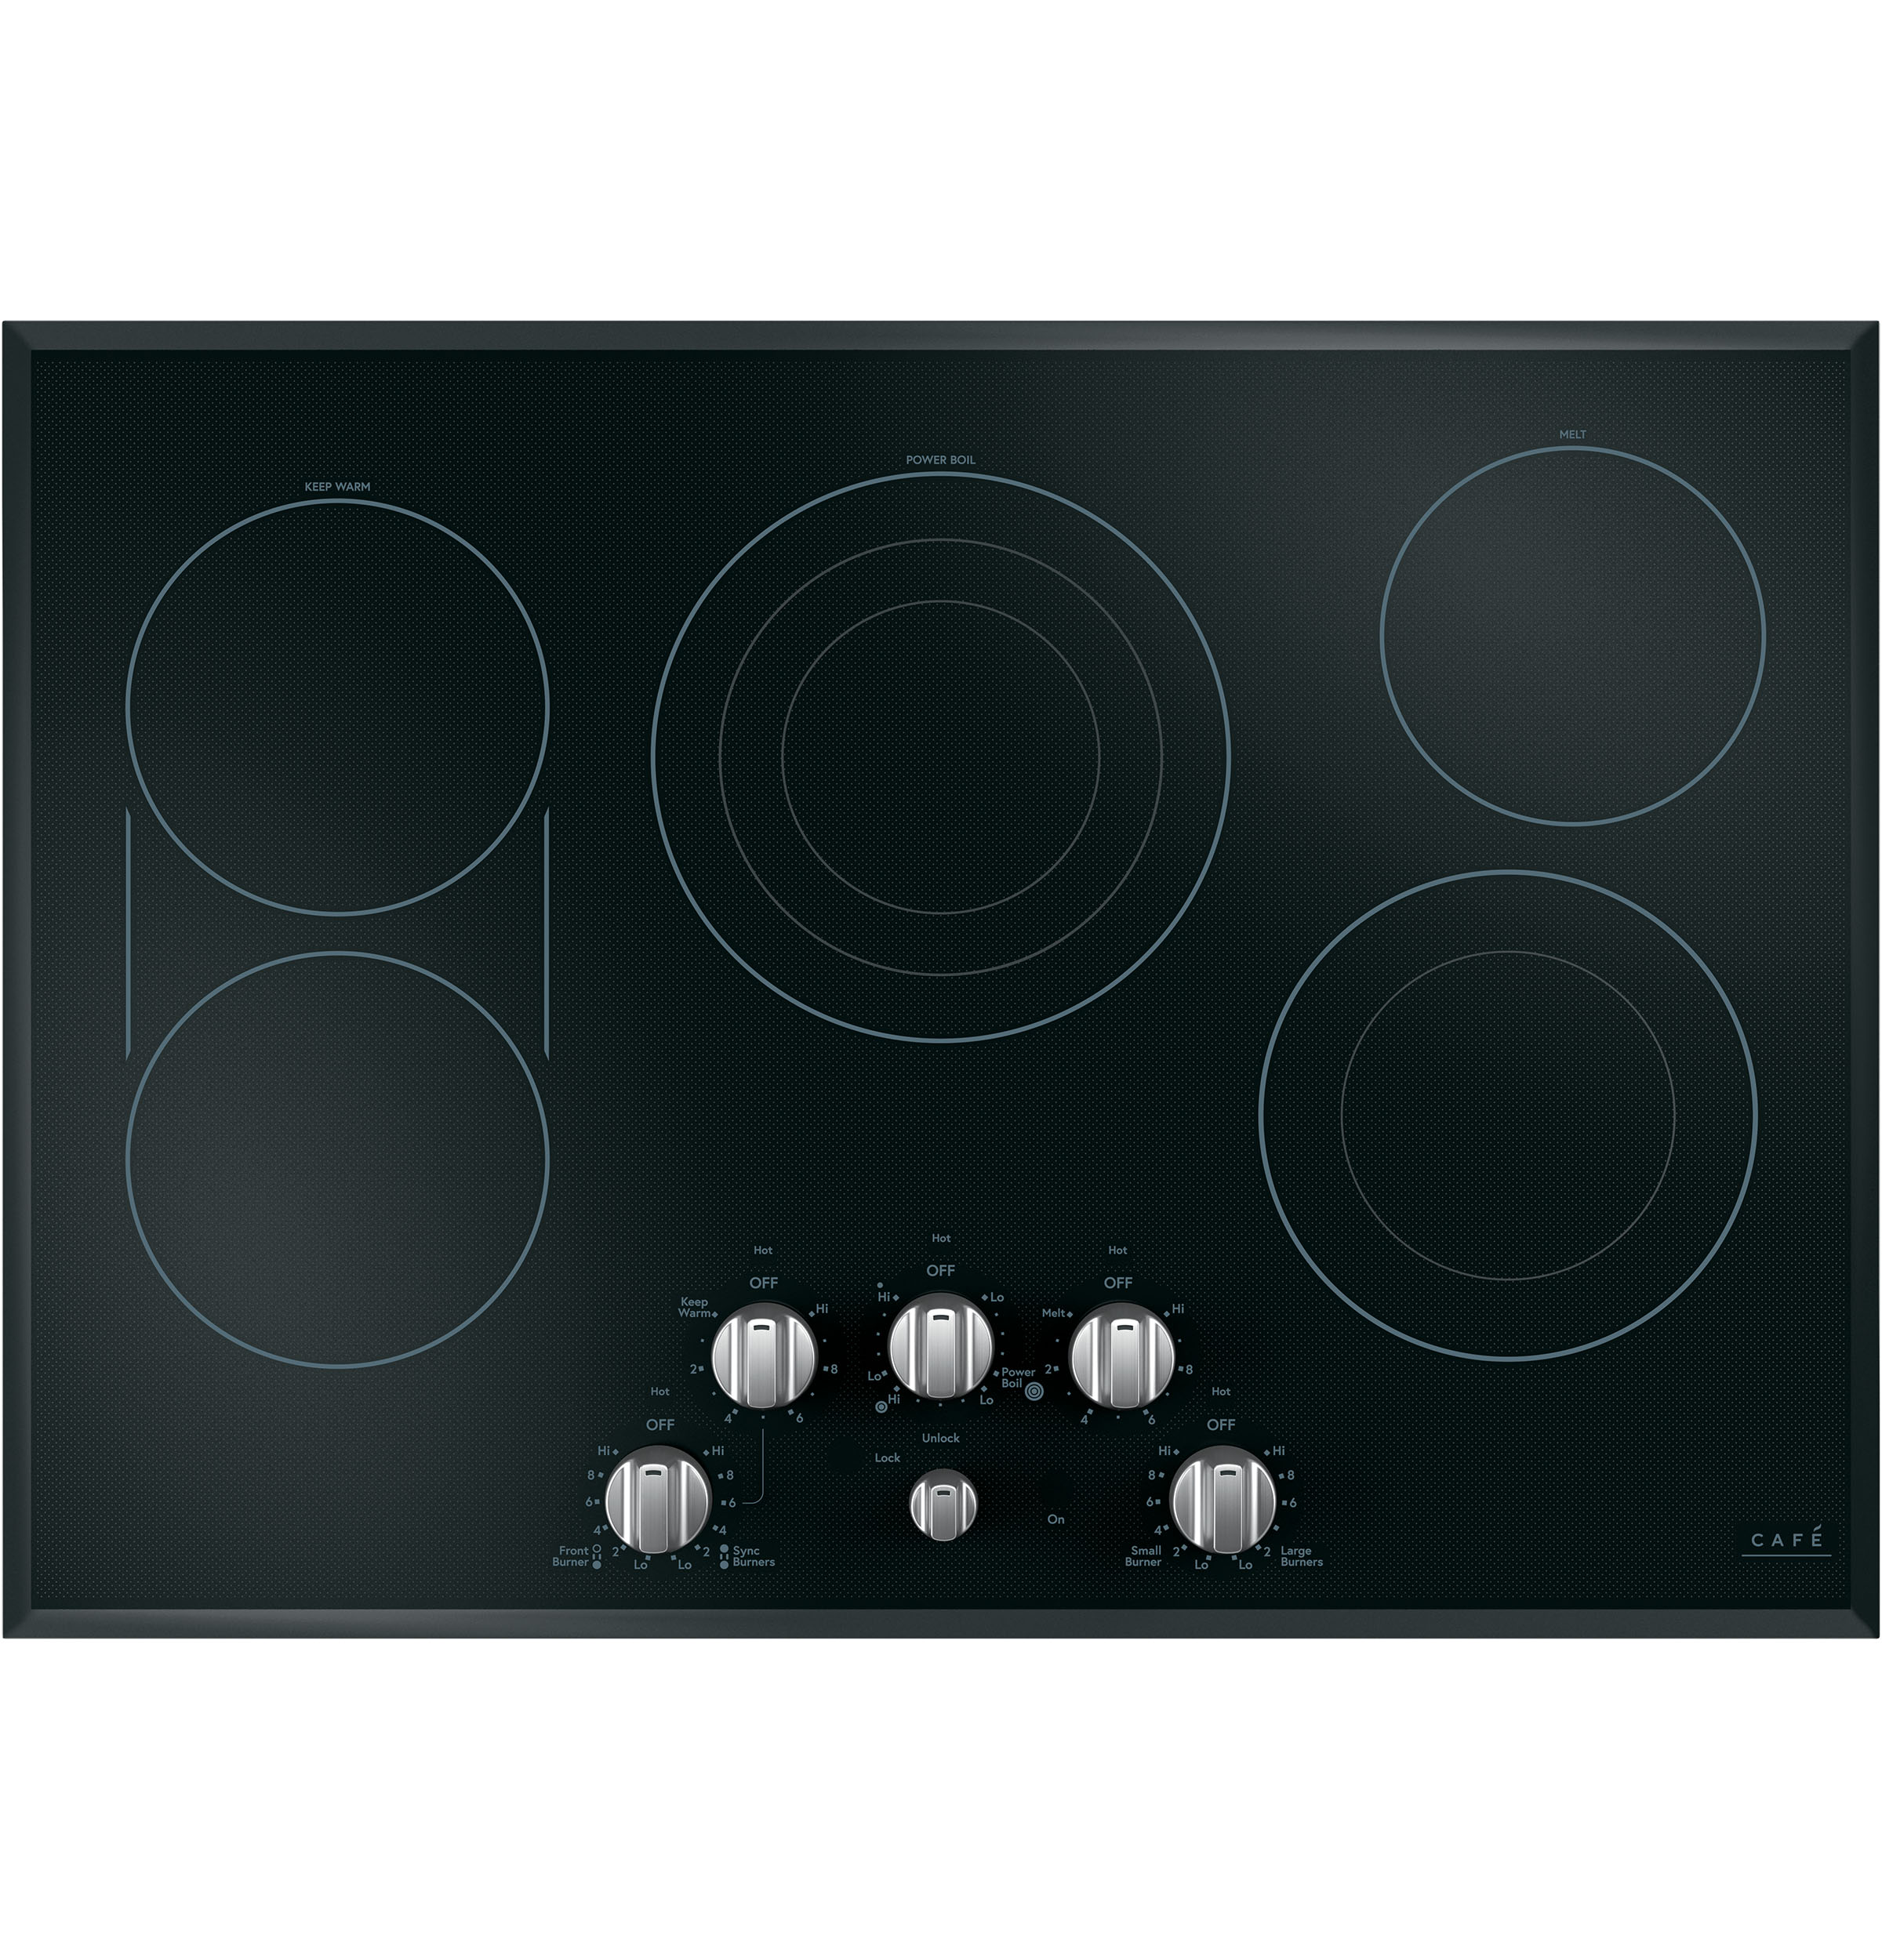 Cafe 5 Electric Cooktop Knobs - Brushed Stainless